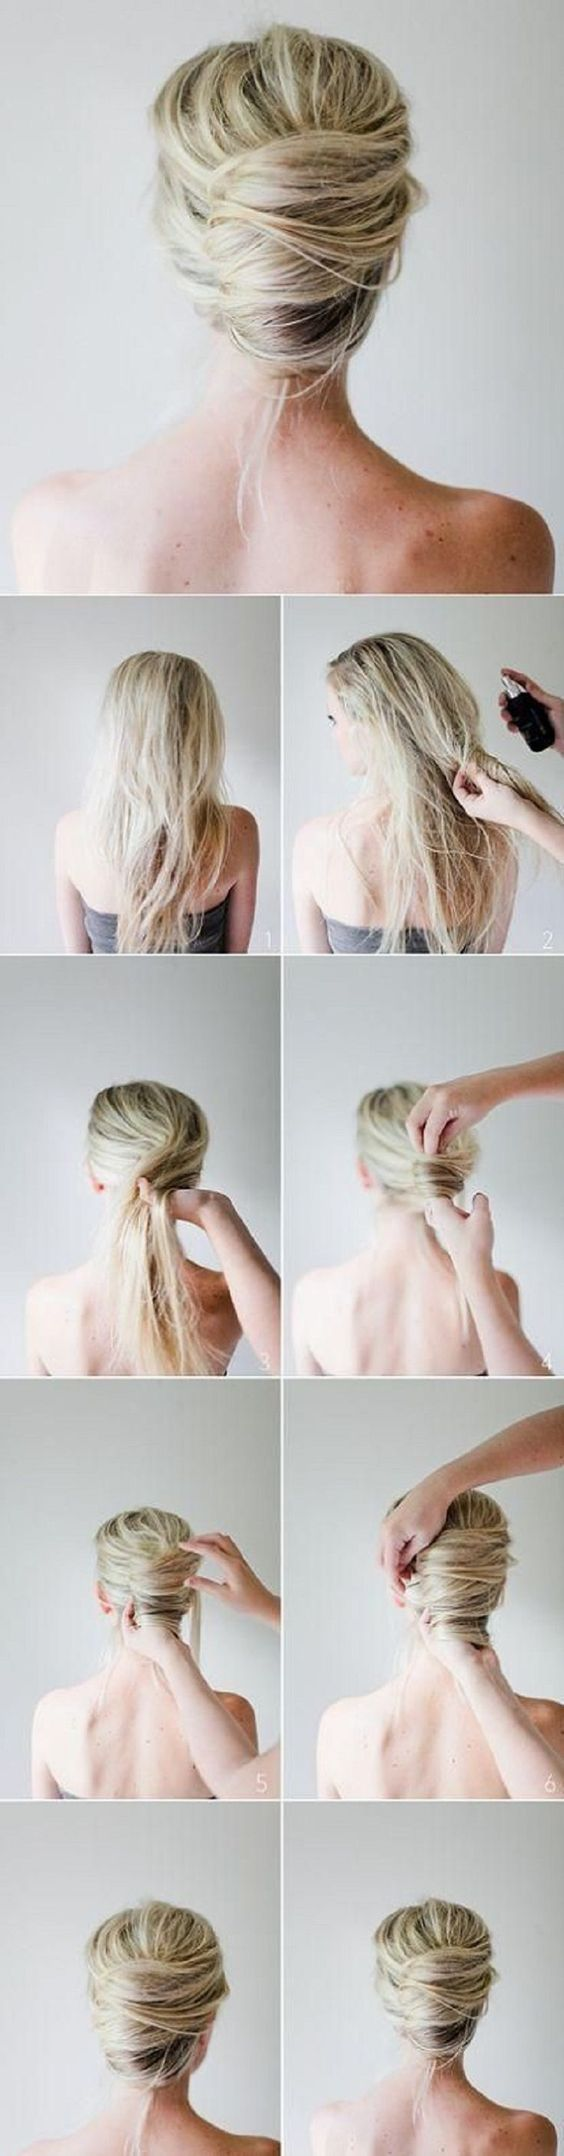 Coiffures Coiffure Simple And Chignons On Pinterest